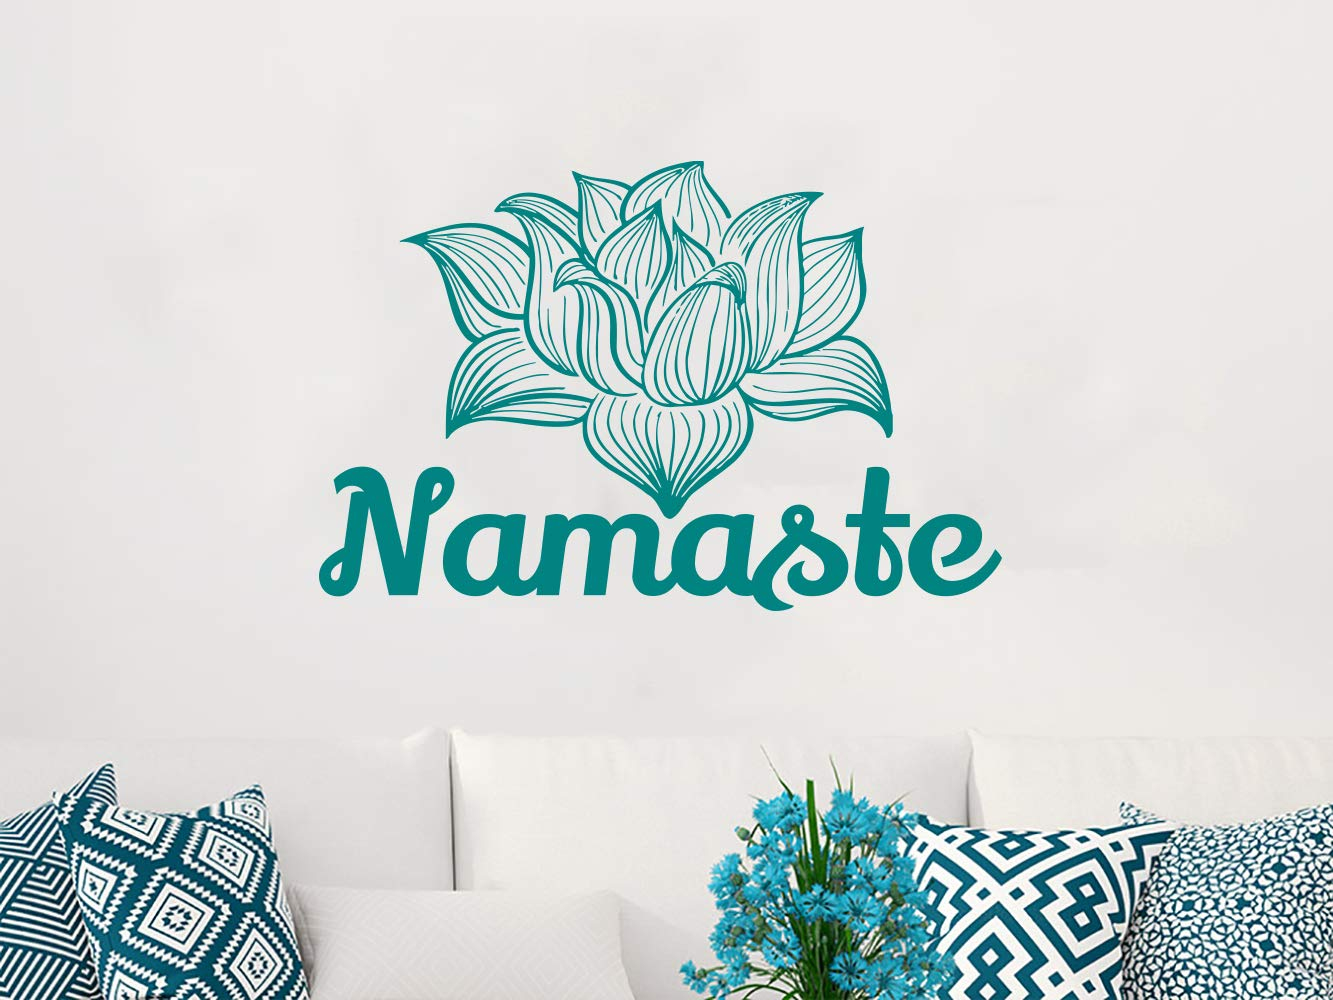 Namaste Wall Decal Vinyl Sticker Decals Lotus Flower Yoga Mandala Indian Ornament Moroccan Pattern Om Home Decor Bedroom Art Design Interior NS667